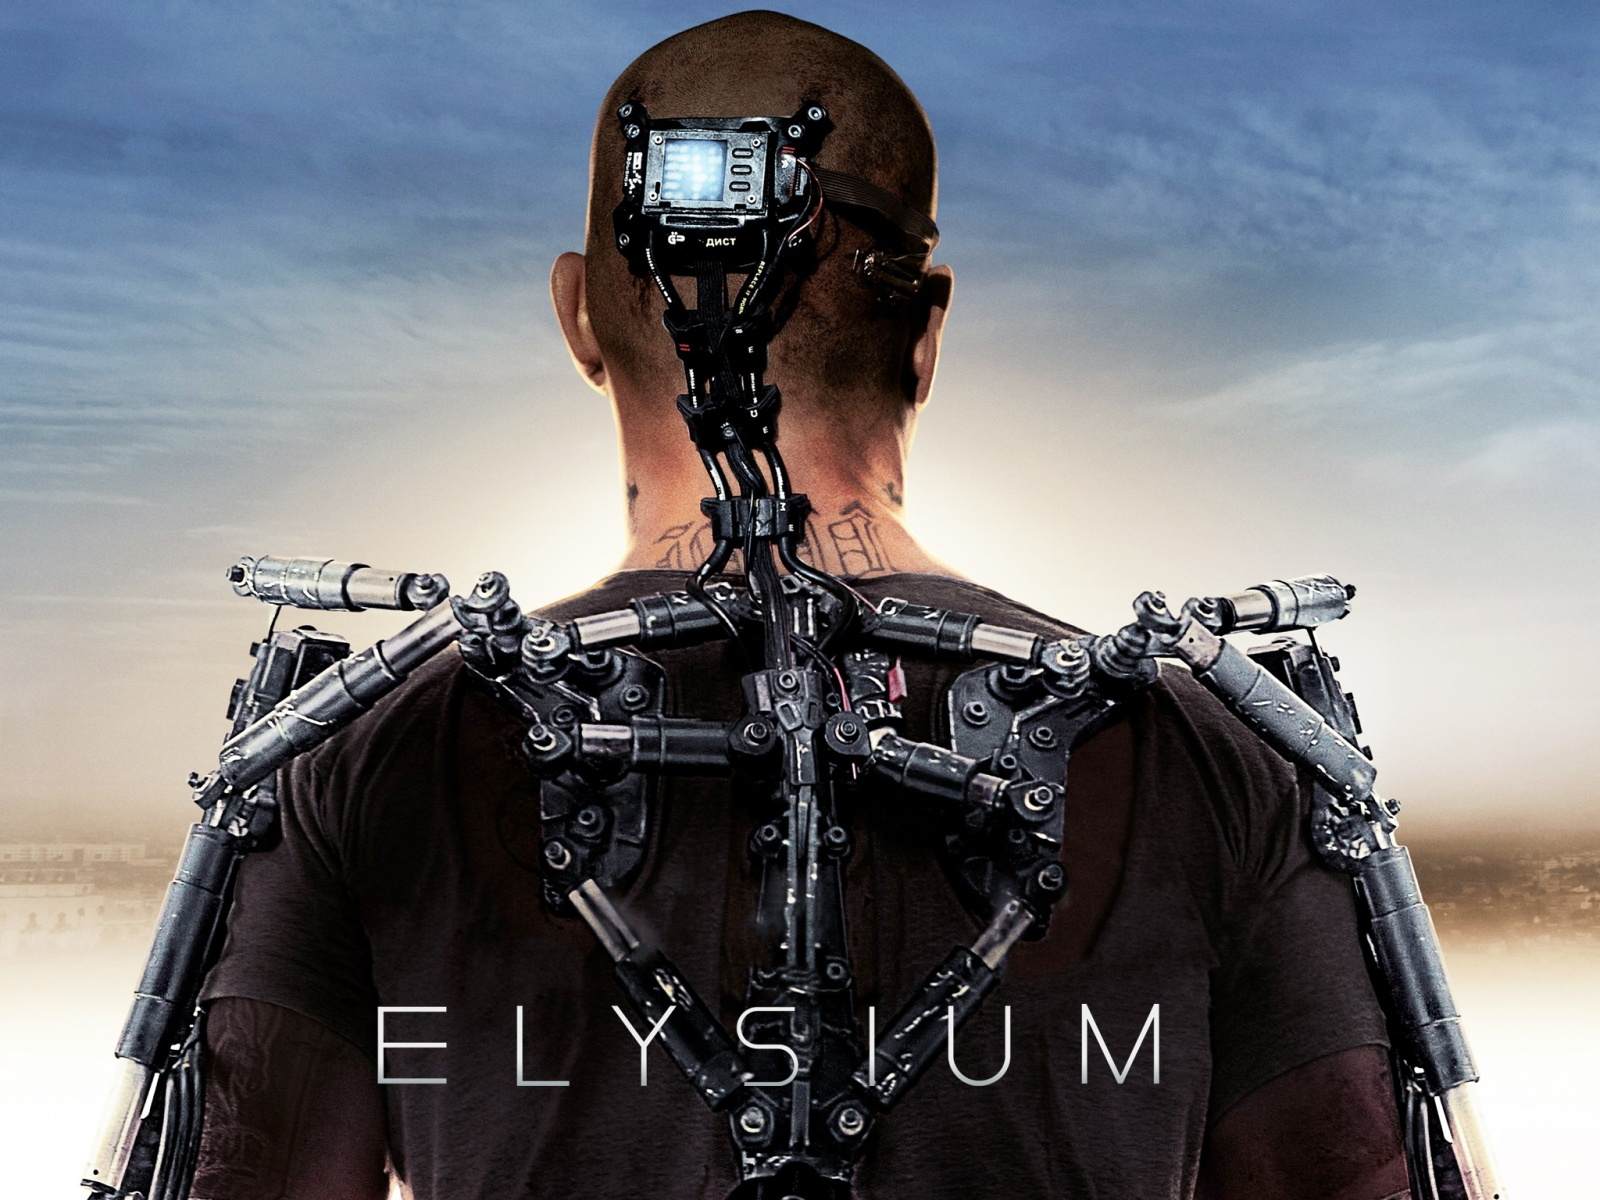 The Elysium ExoSkeleton For Real! (Video)